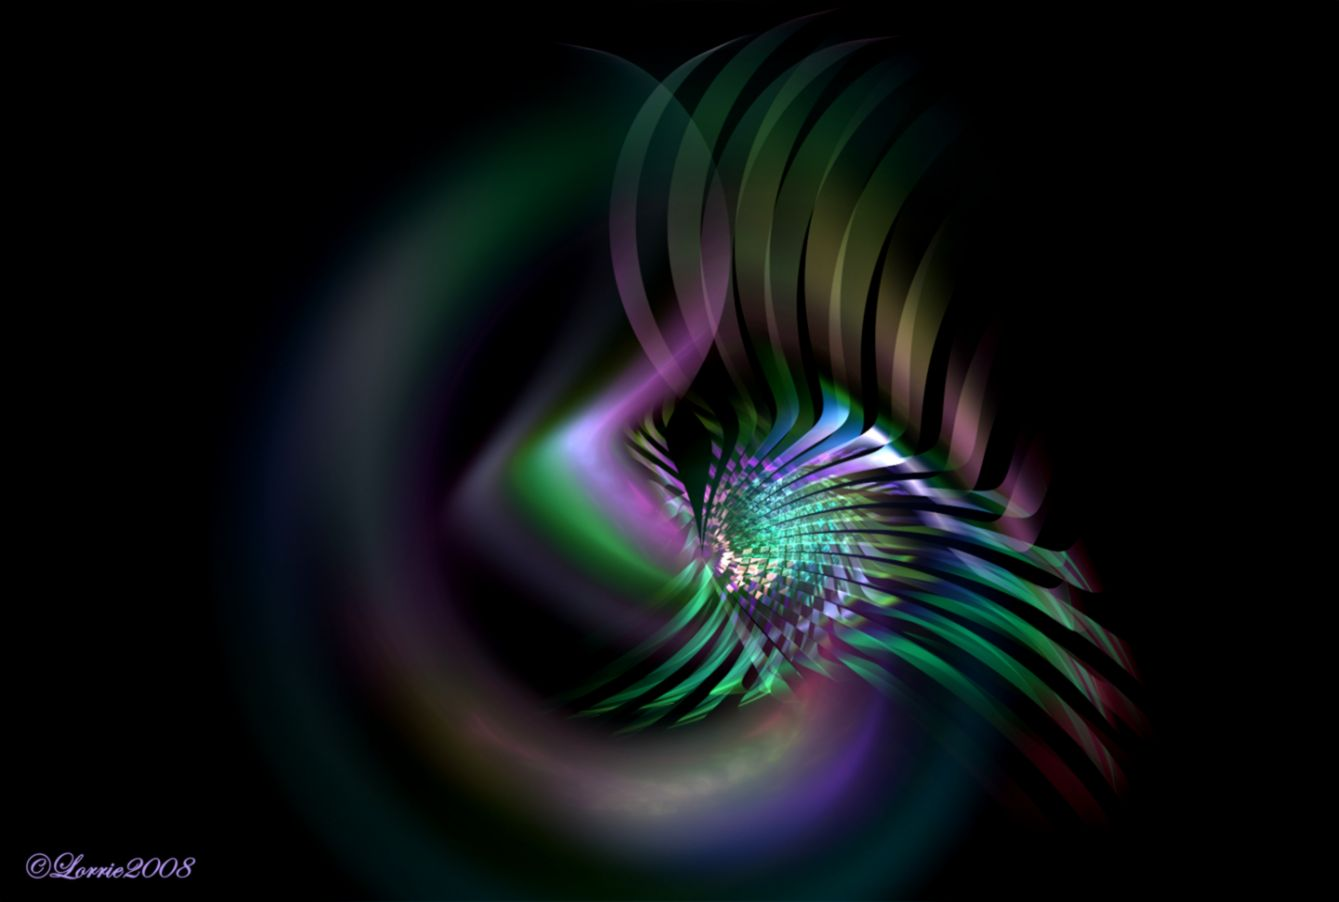 Abstract Peacock Wallpaper | Wallpapers Gallery